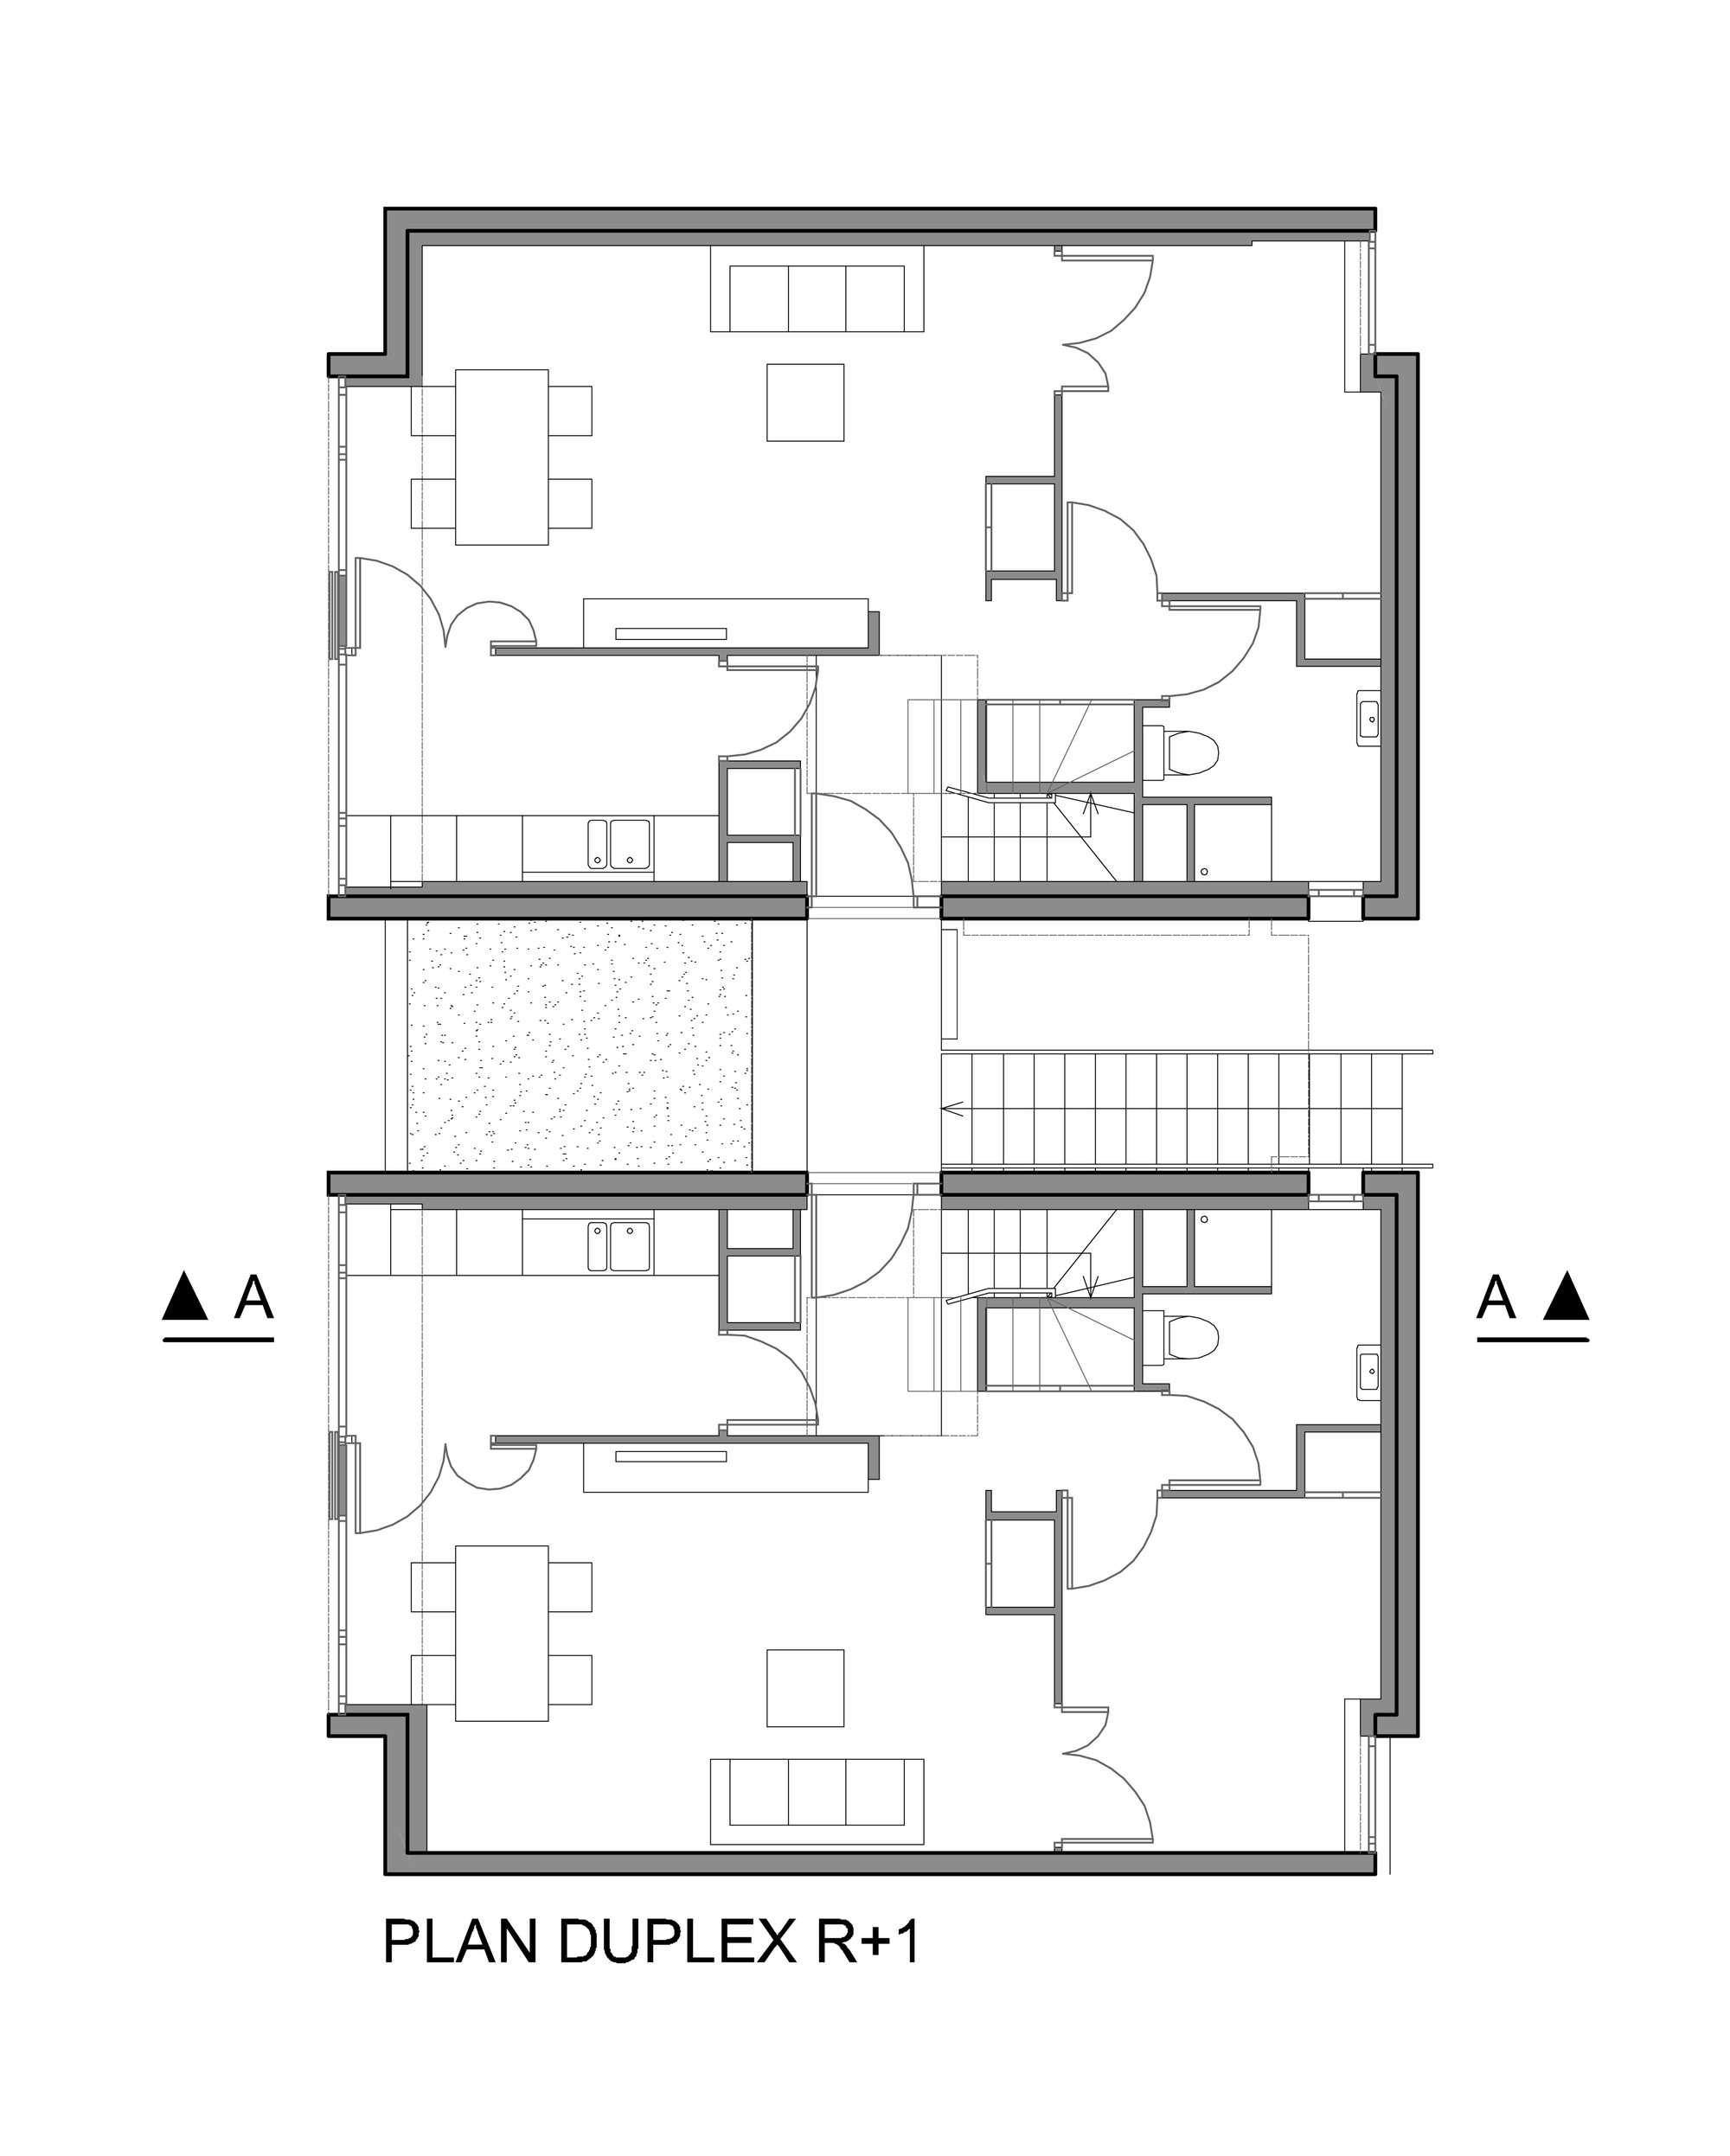 Duplex housing floor plans house design plans for Housing blueprints floor plans